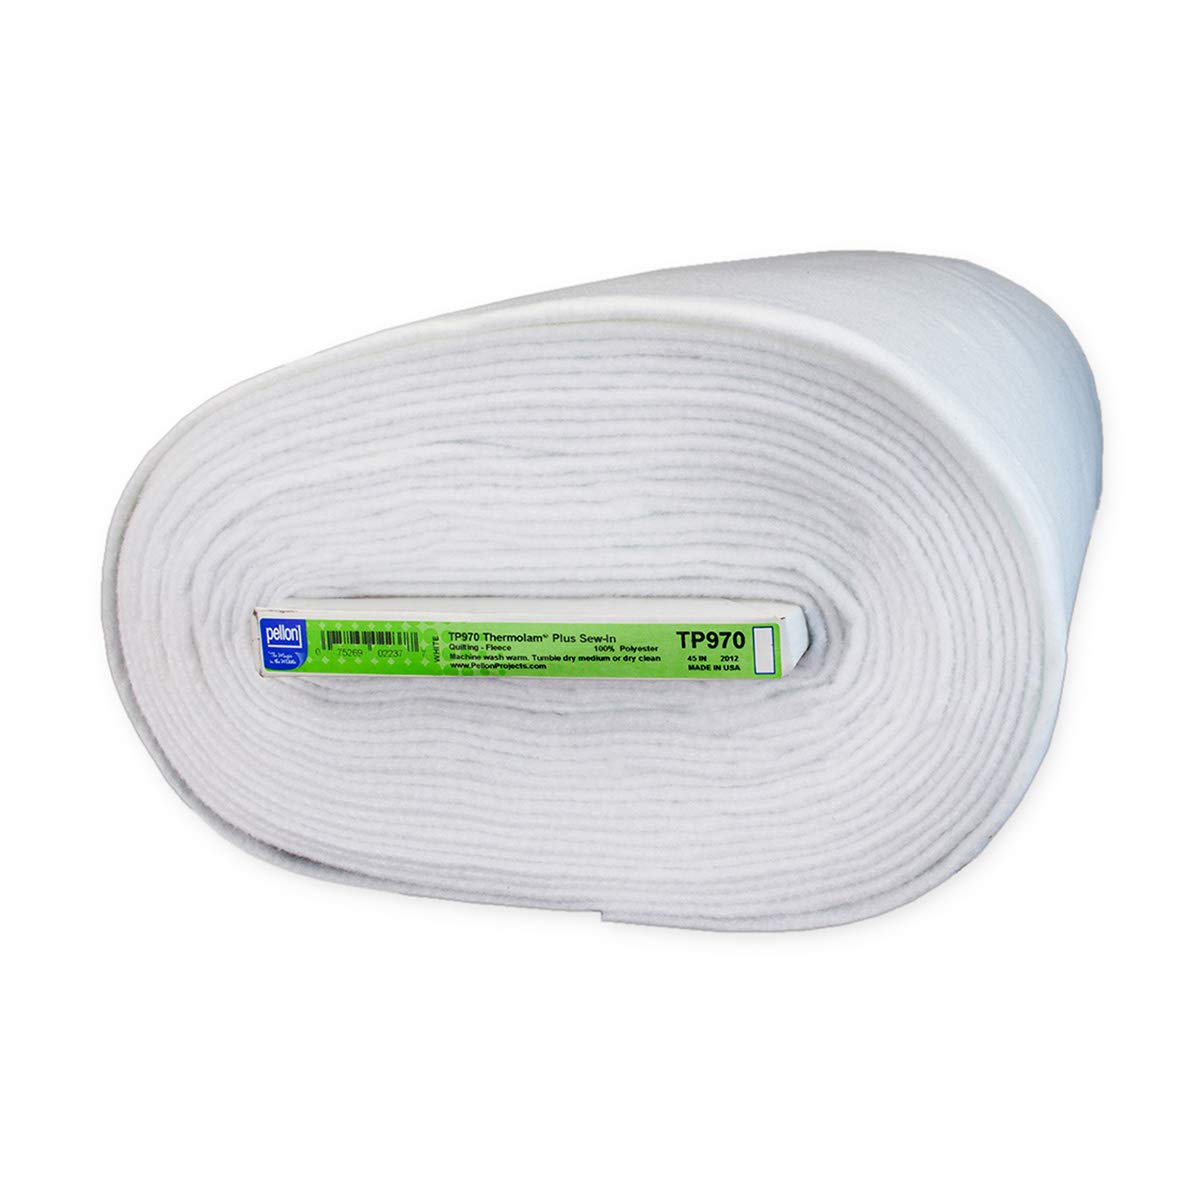 Pellon TP970 Thermolam Plus Sew-In -Needle Punched (Bolt 20 Yard) White by Pellon